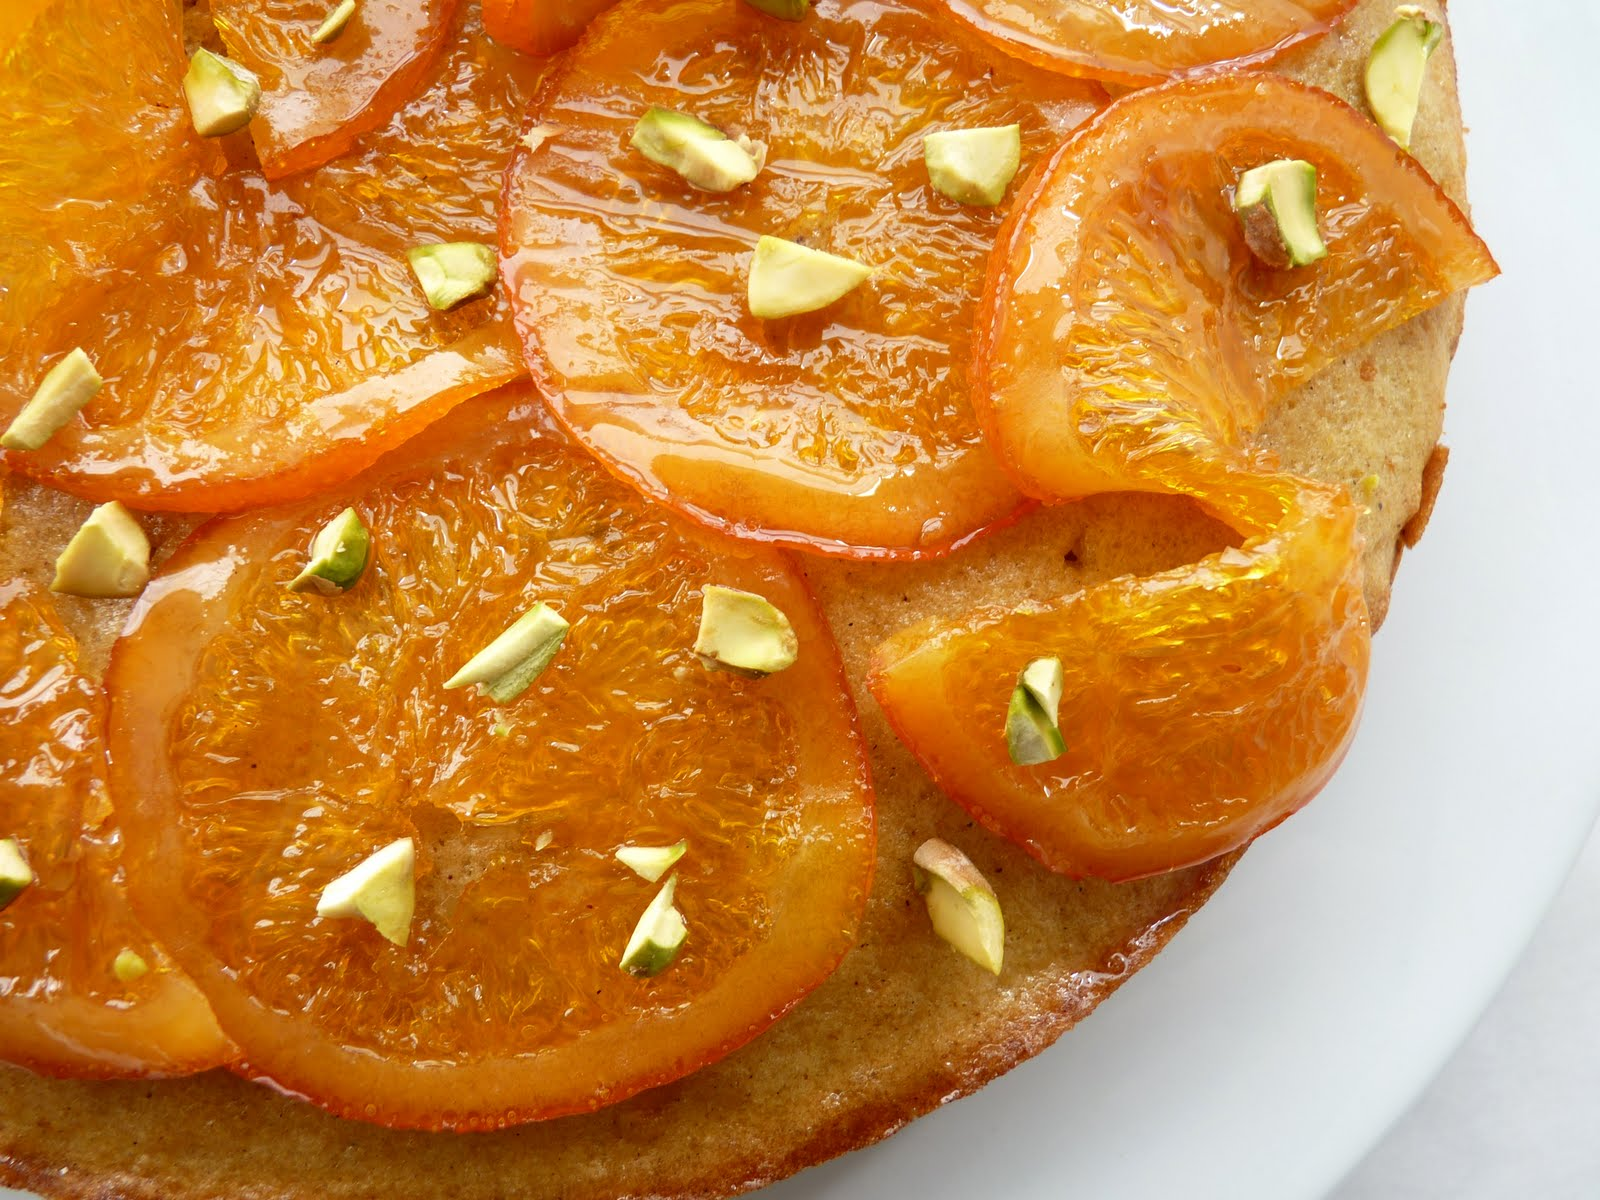 pastry studio: Olive Oil Cake with Candied Orange